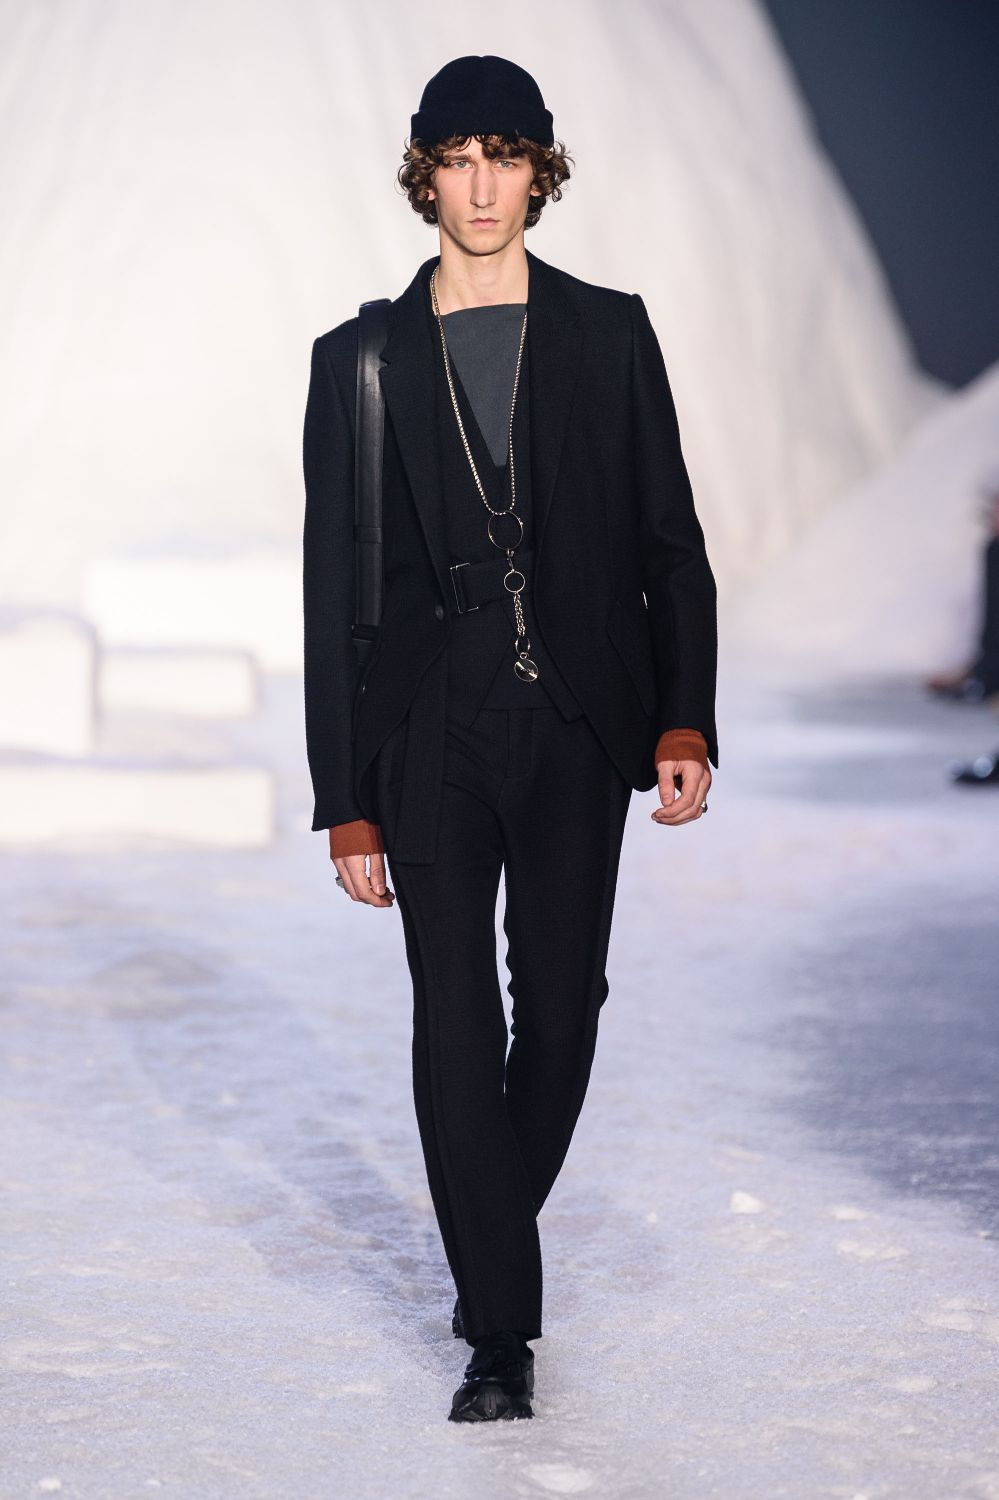 a42f3c56 Winter 2018 Collection of Zegna – Trend Hotspot